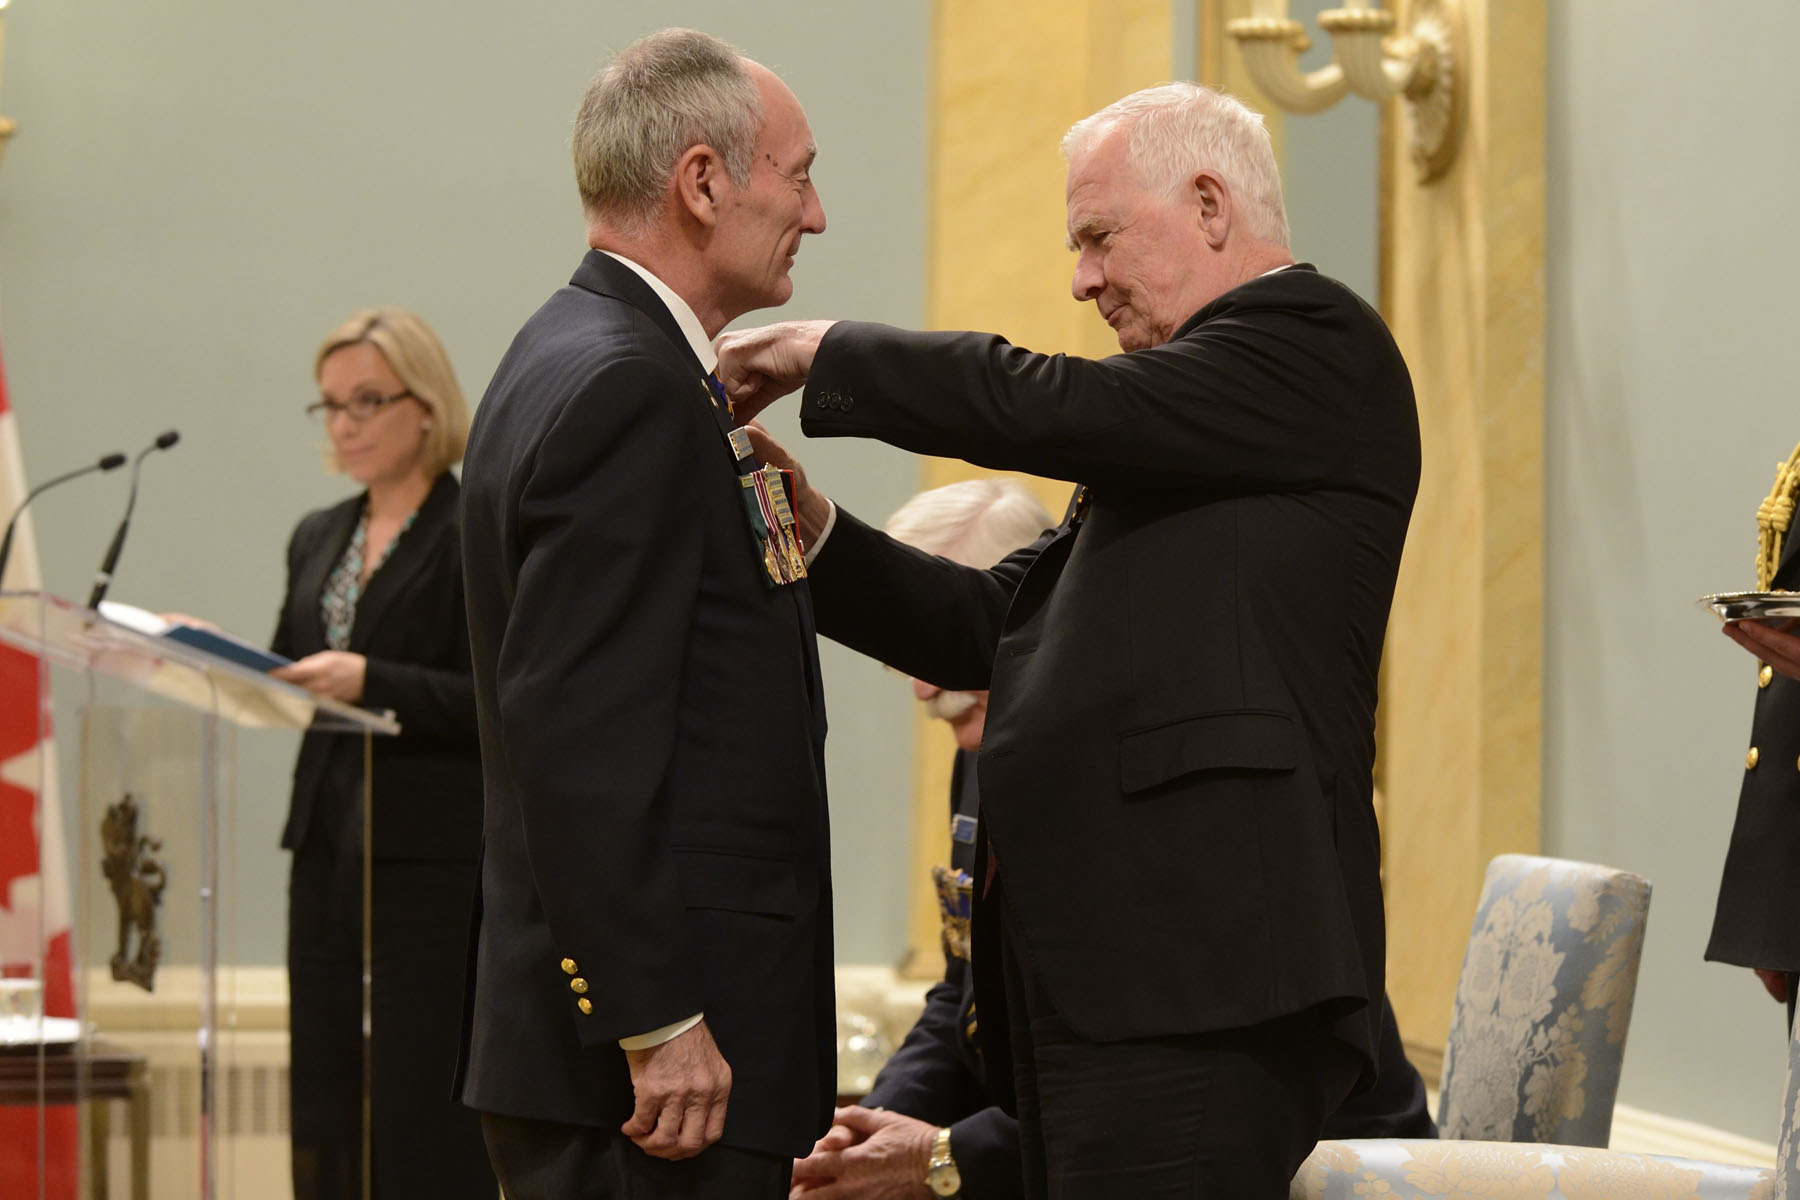 The Governor General presented a poppy to Mr. Murray.